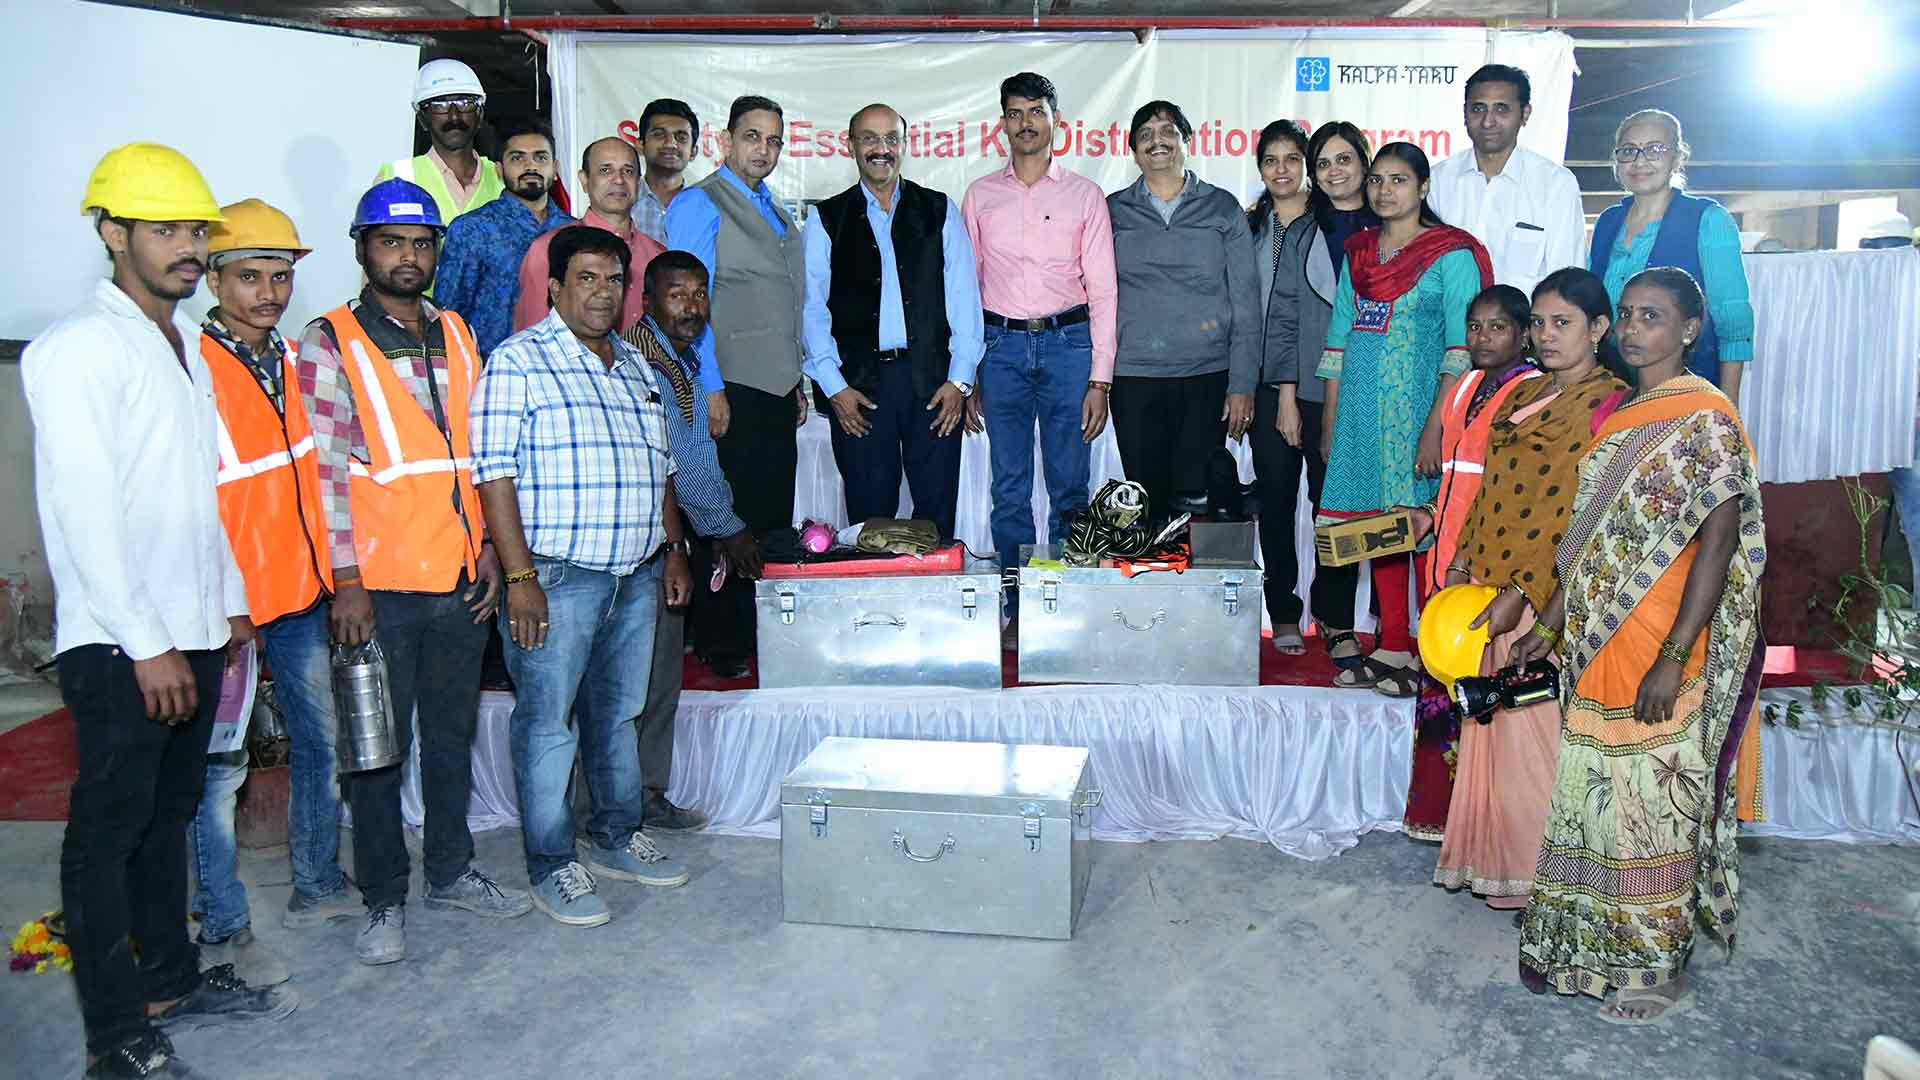 Inauguration of Safety and Essential Kit Distribution Program at Kalpataru Jade Site of Kalpataru Group at Baner on 10th Jan, 2019- 120 Kits were dist